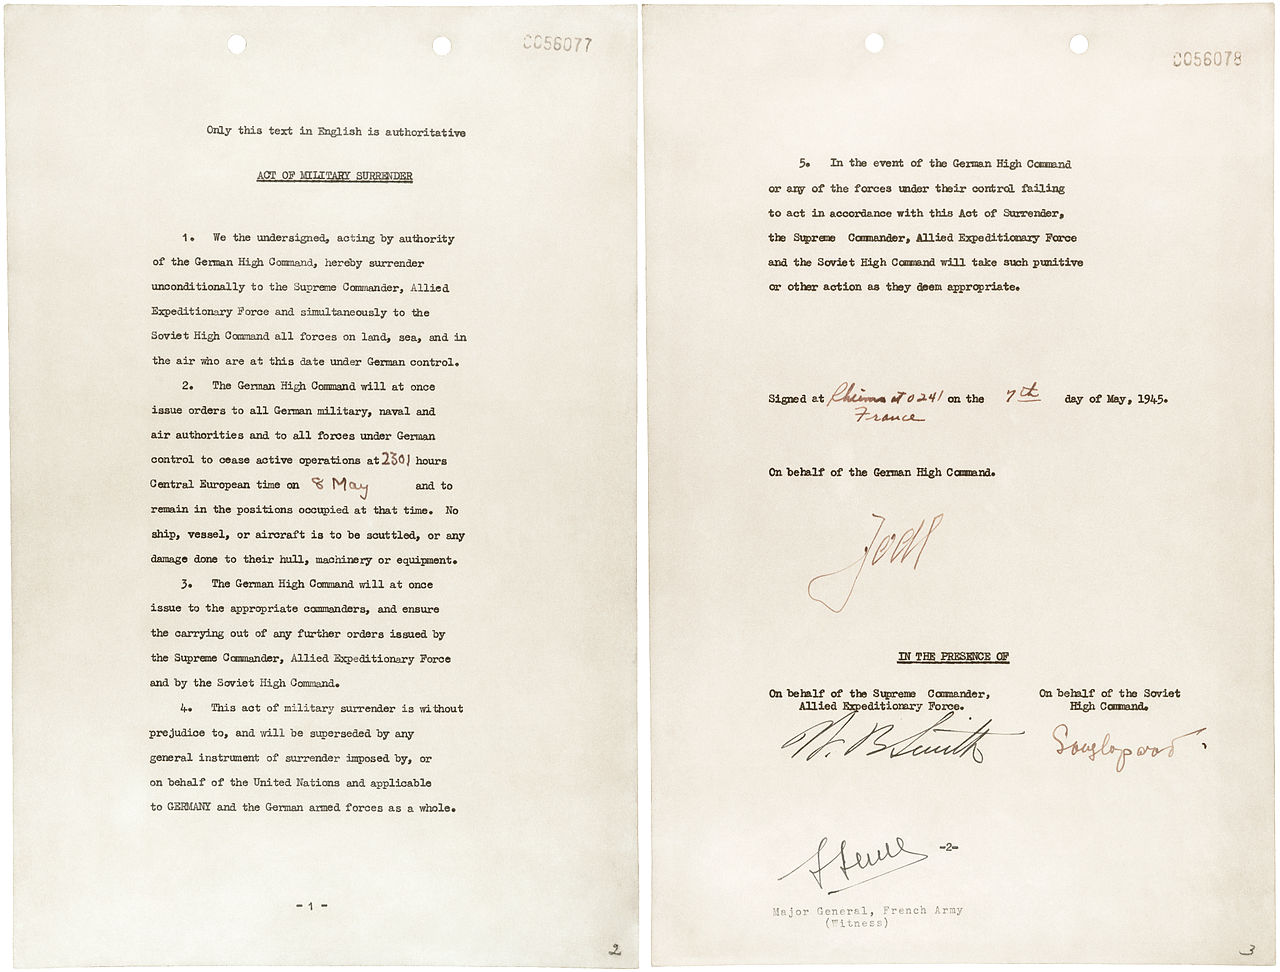 German_instrument_of_surrender2.jpg